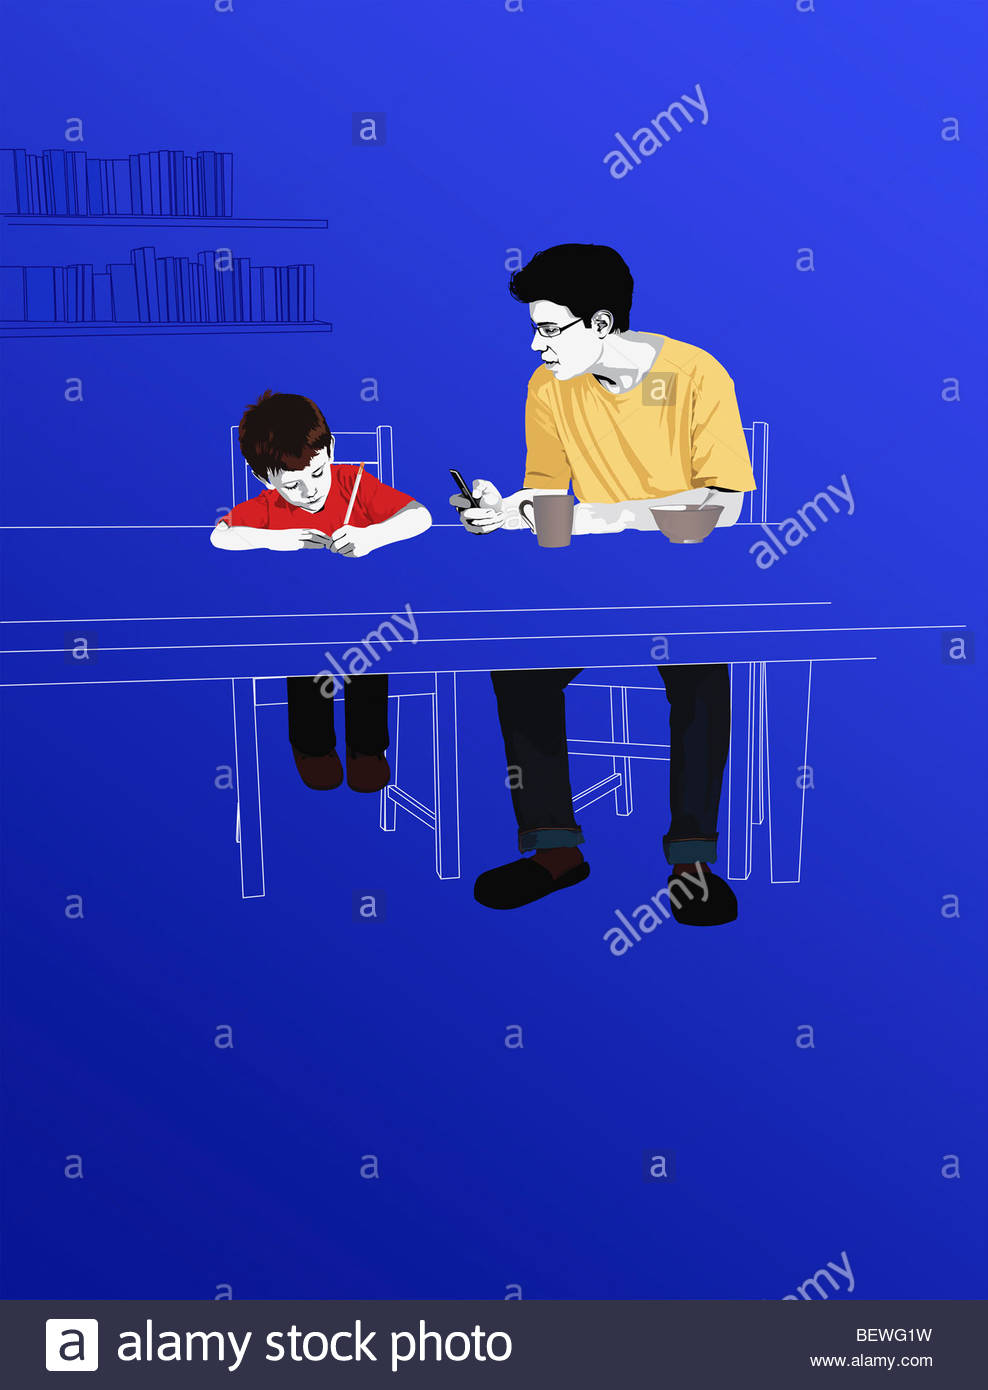 Mentor helping boy with homework - Stock Image